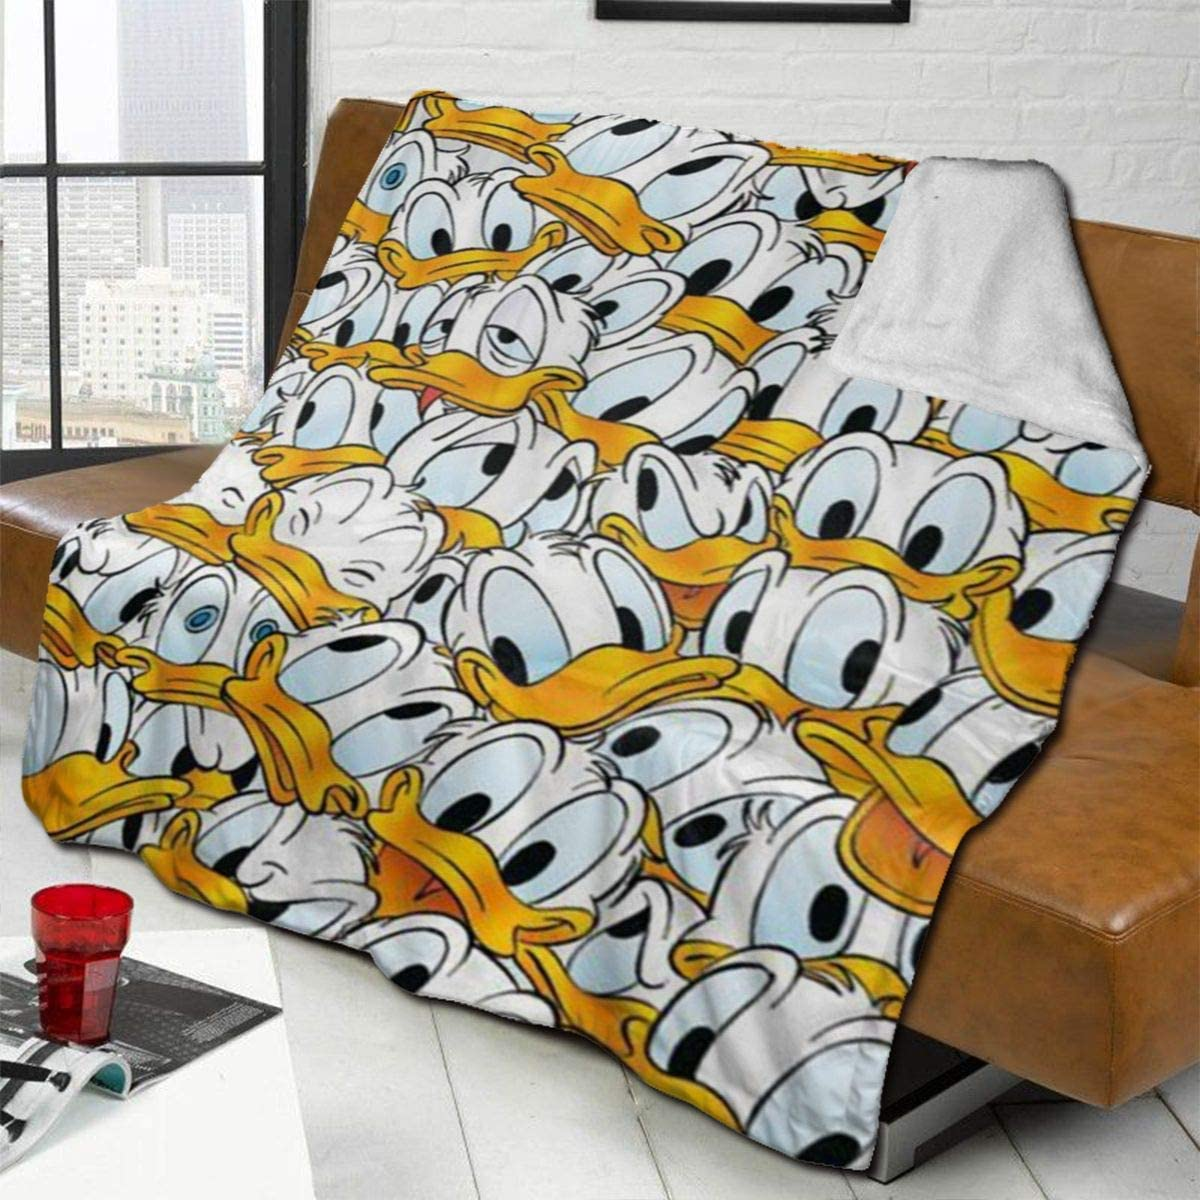 Microfiber Flannel Throw Blanket Just A Girl Who Loves Ducks Super Soft Cozy Lightweight Summer Quilt Perfect for Bed Sofa-50x40 Small for Kids